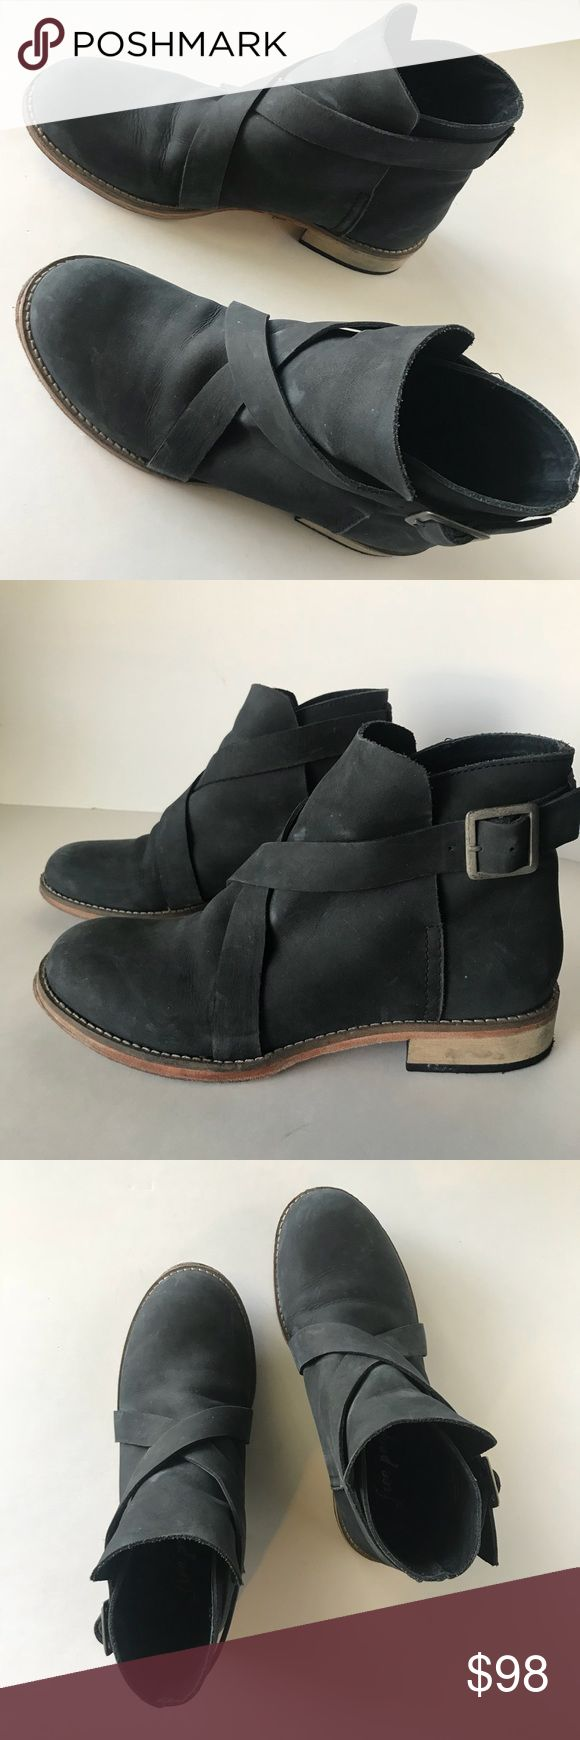 Free People Las Palmas boots booties 37 7 black Authentic Free People Las Palmas ankle boots. In bushed aged black leather. Size 37/7 with cross over real working buckle for easy on/off. These are in great condition. So cute and versatile. Comfy even! The front sole has separated a tiny bit, never more than it is now. This can be easily and cheaply fixed. Cost you $5 at a cobbler. I just simply have not made the time. Free People Shoes Ankle Boots & Booties